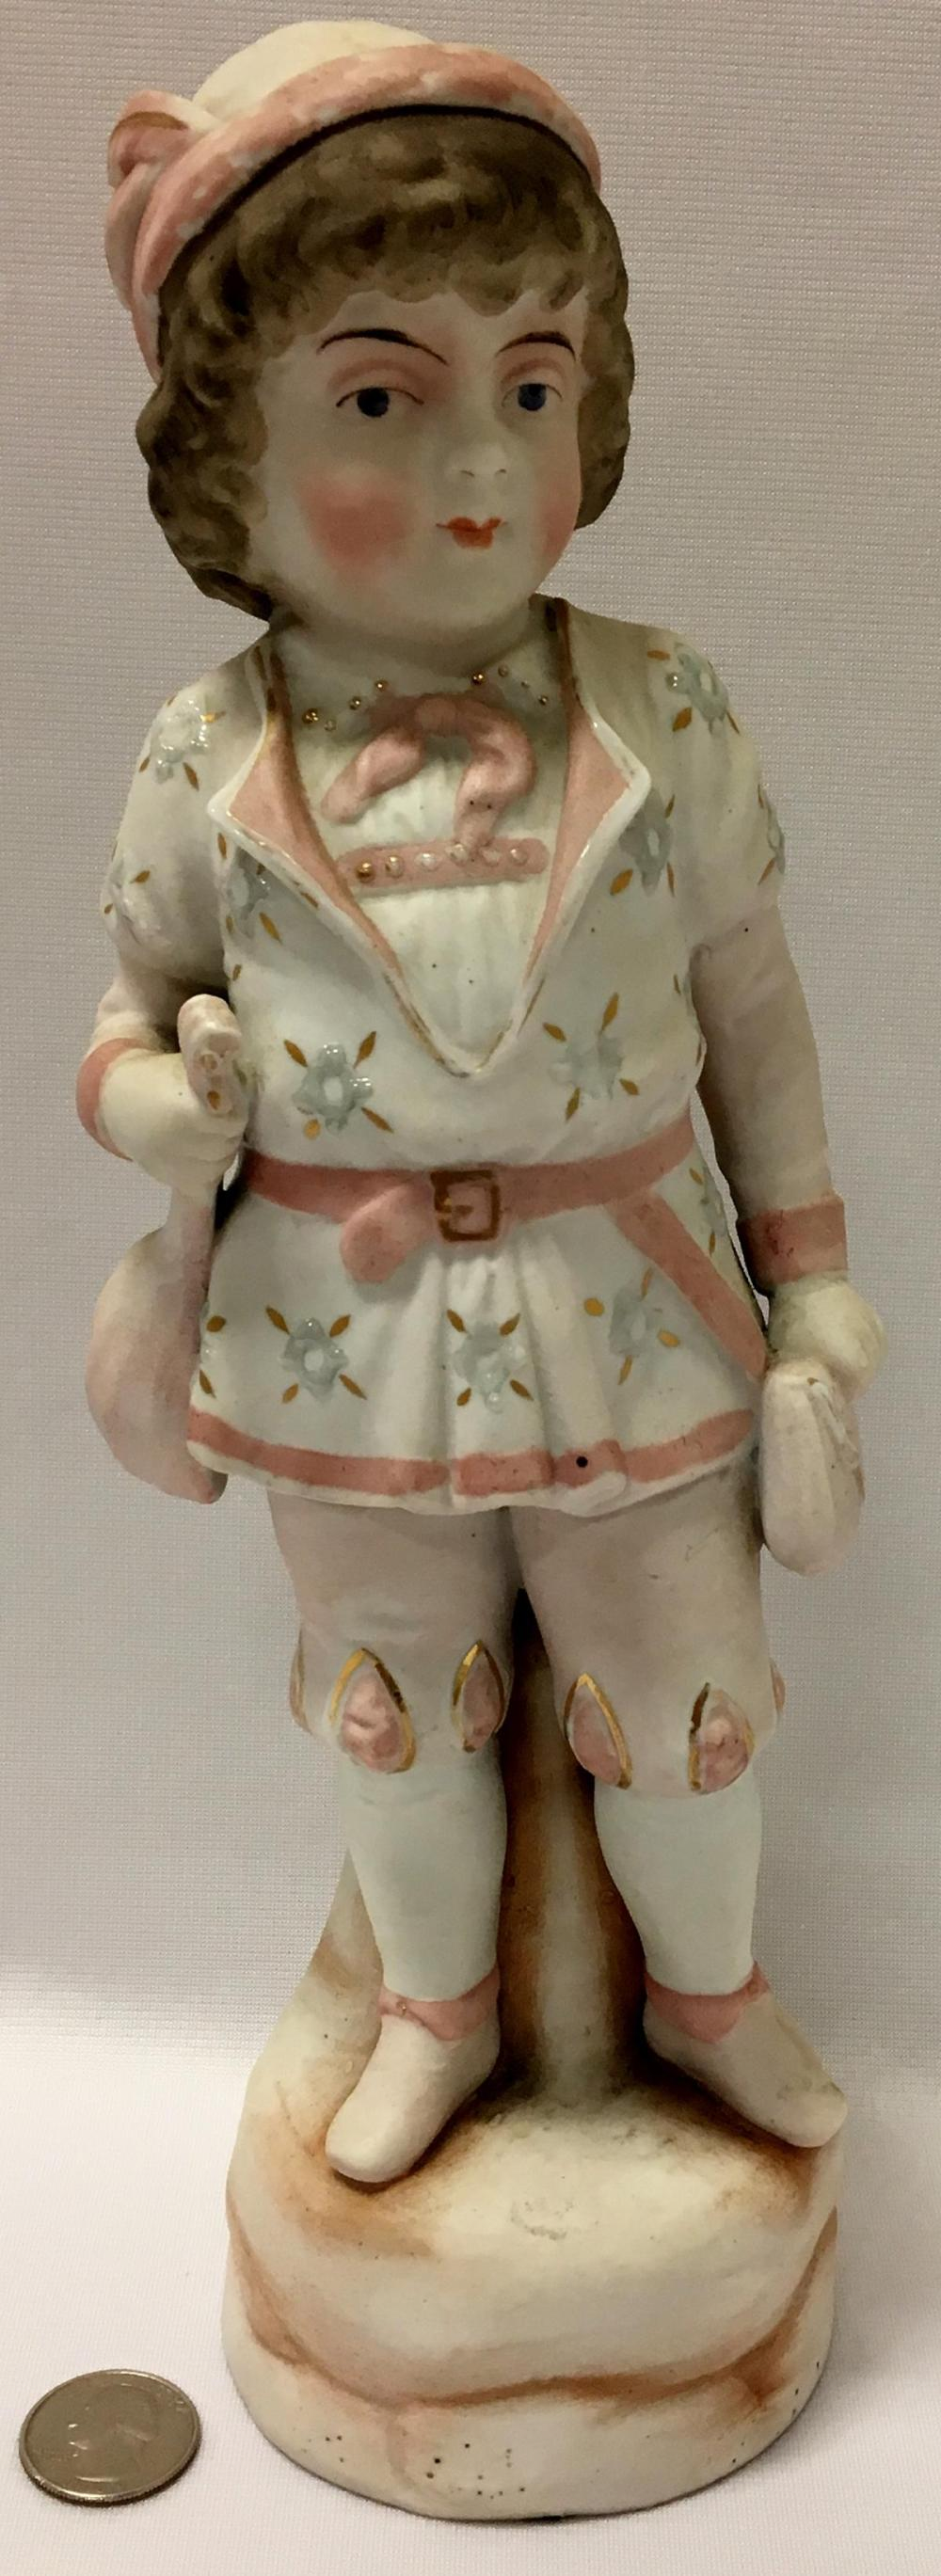 Antique 19th Century Gebruder Heubach Pink French Boy Bisque Figurine